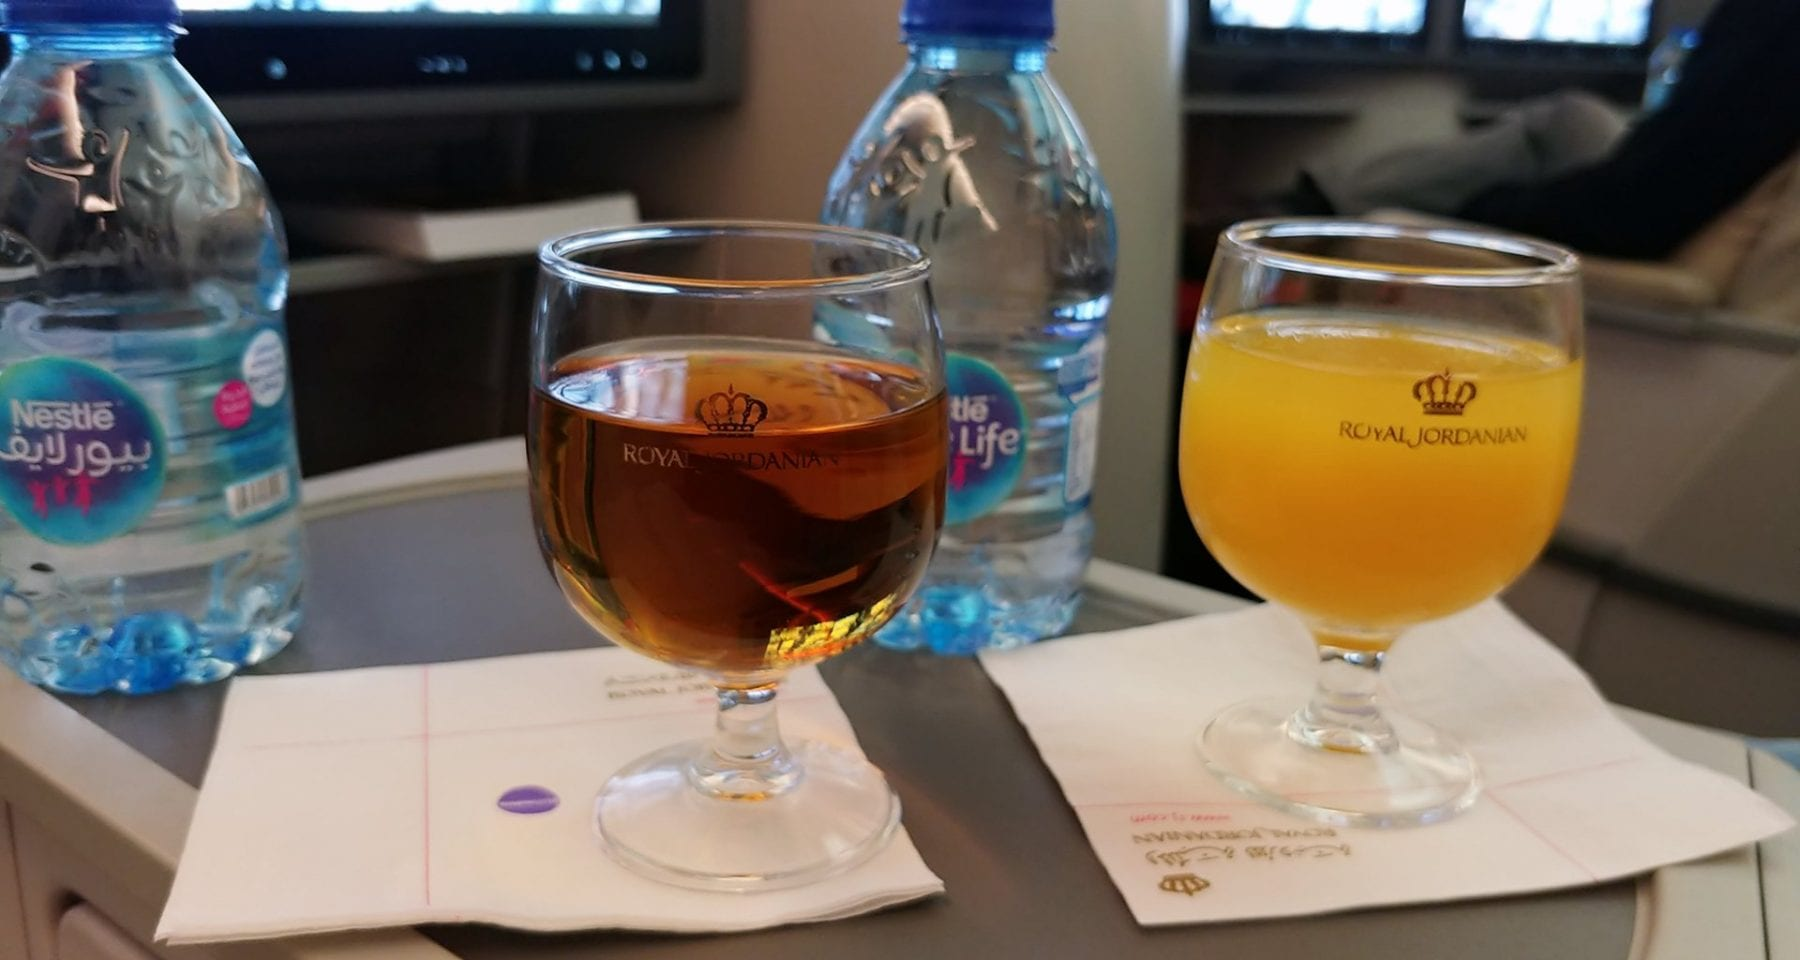 Royal Jordanian business class drinks